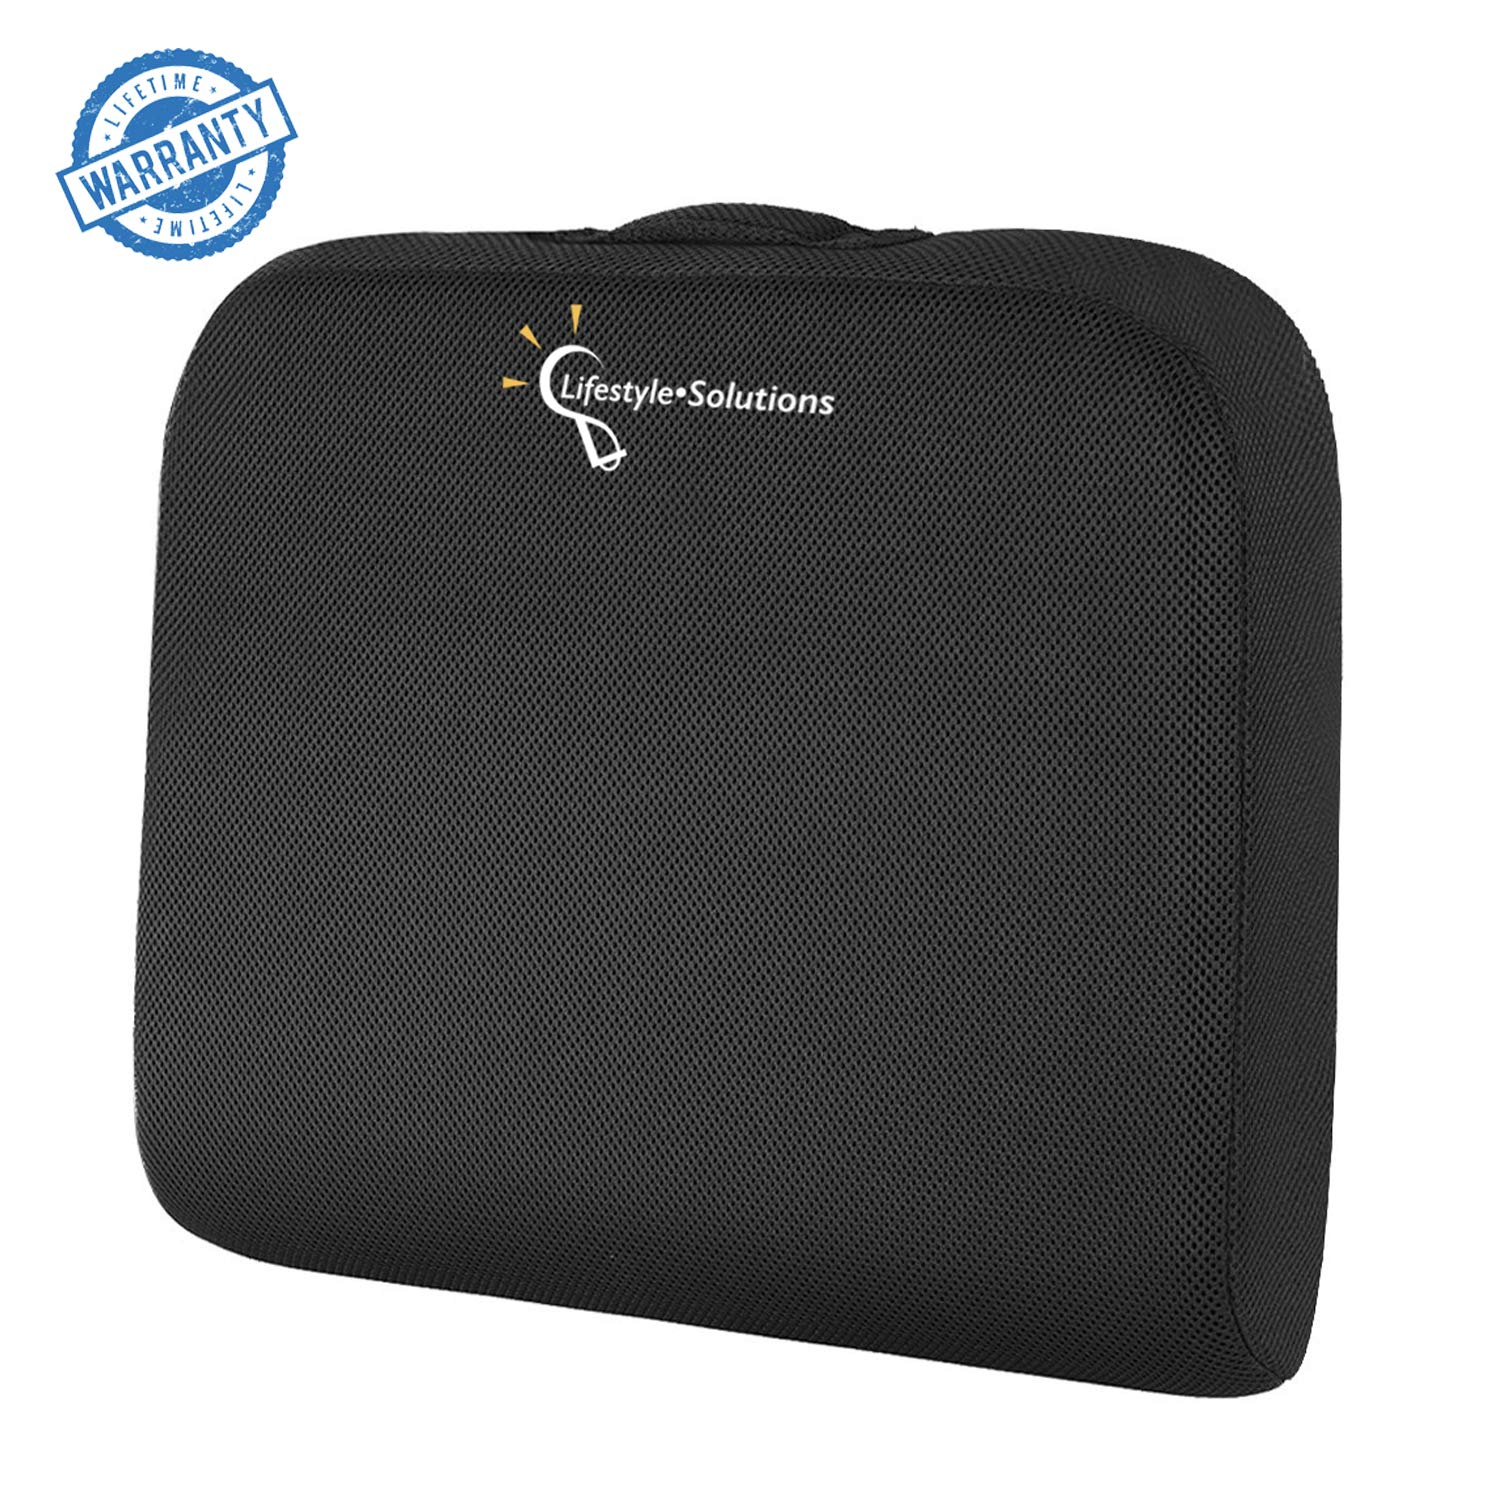 Large Seat Cushion with Carry Handle and Anti Slip Bottom, Memory Foam Seat Cushion for Office Chair , Wheelchairs, Truck Drivers, Gives Relief from Back Pain, Exclusive Carrying Bag by Lifestyle-Solutions